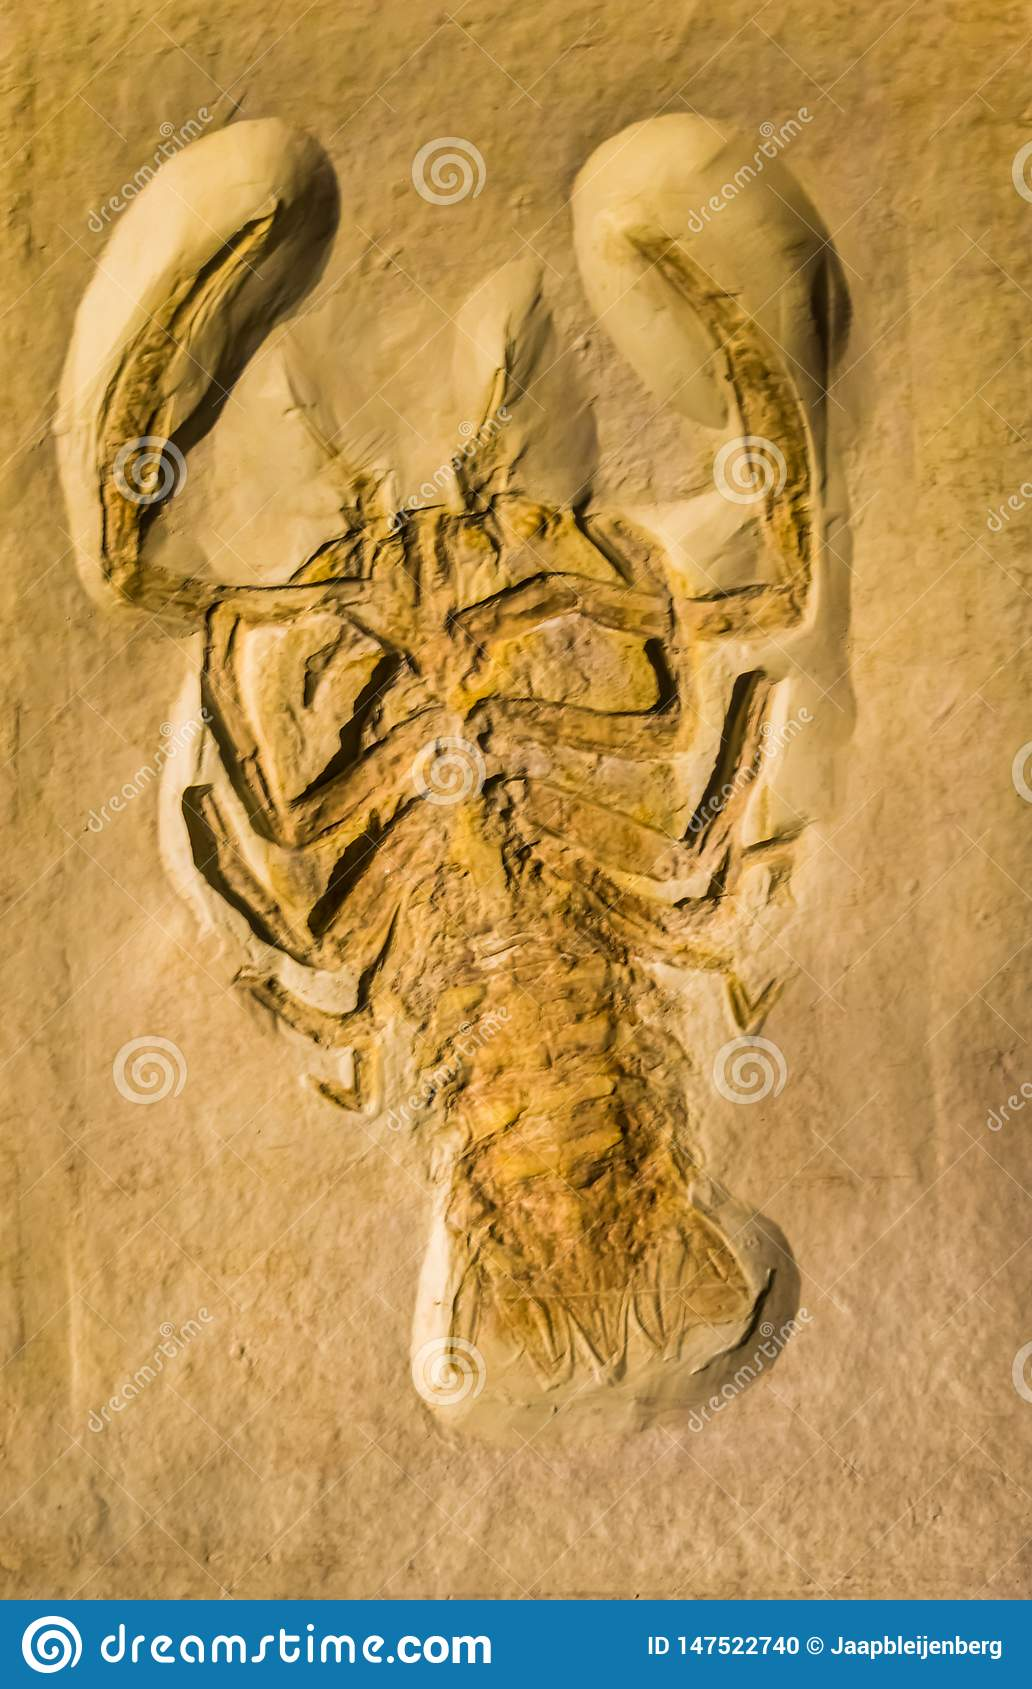 Fossil of a Cyclerion propinquus, extinct armored crab from the jurassic period